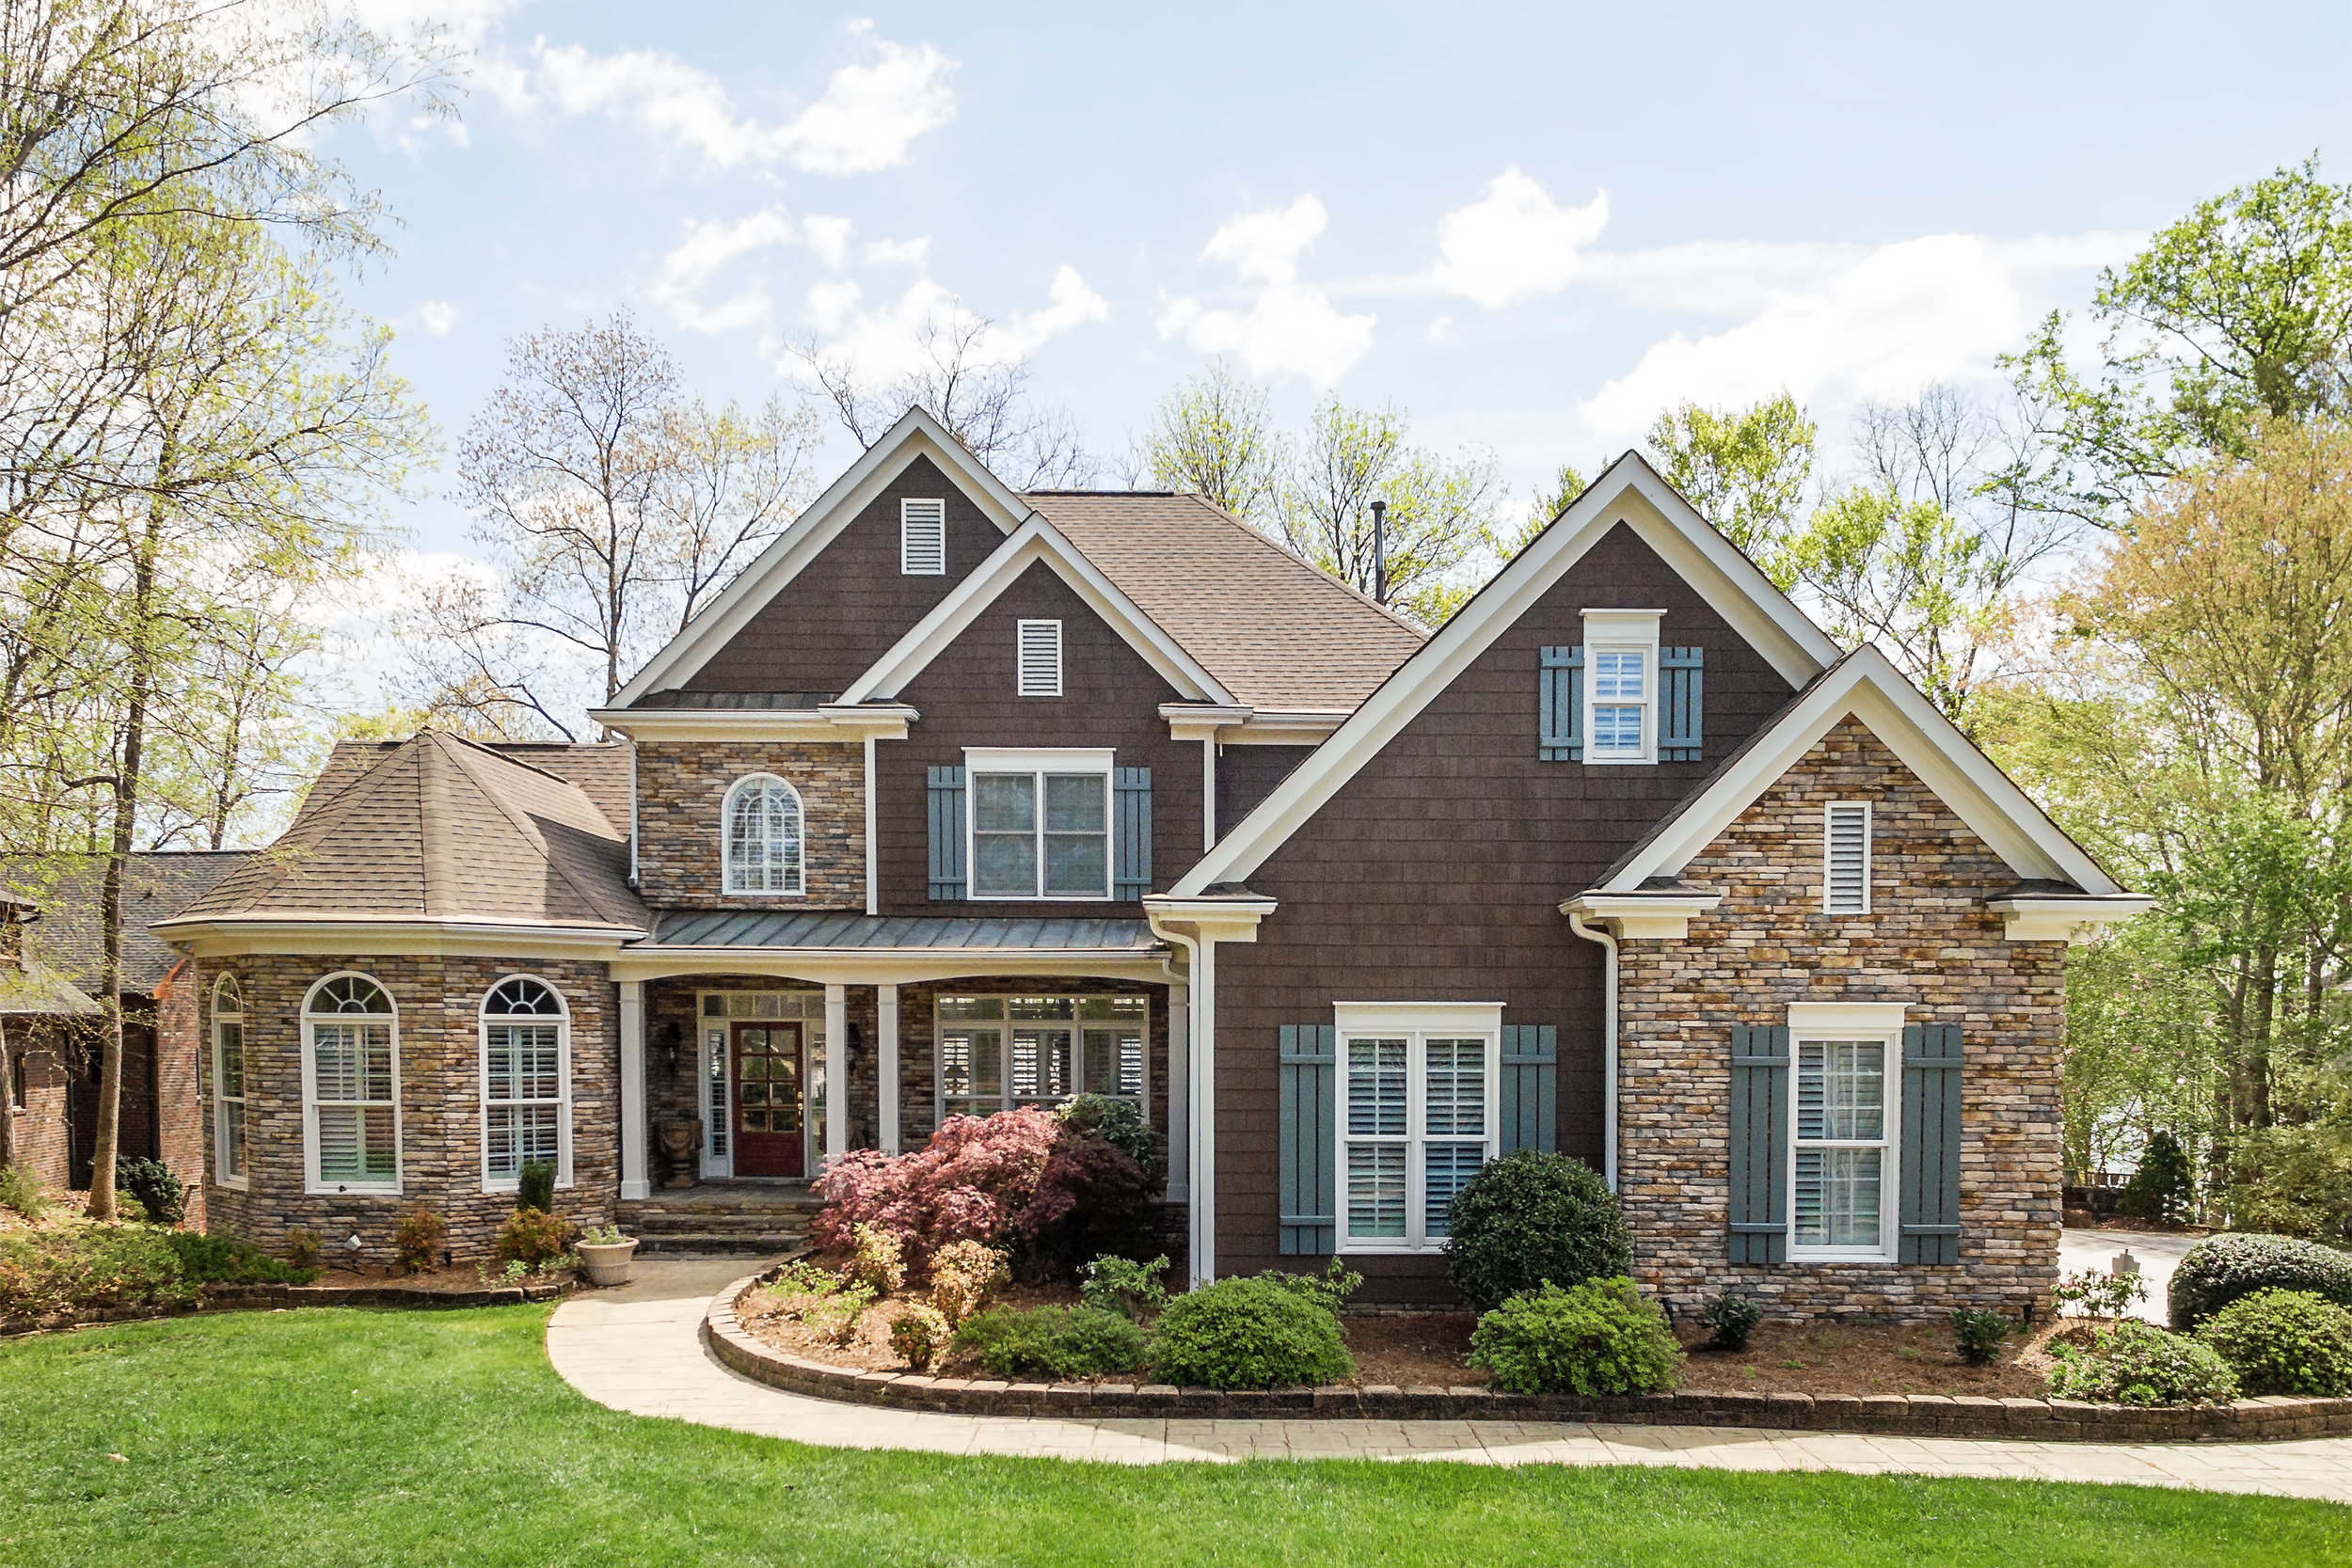 213-whiterock-dr-mt-holly-nc-real-estate-photo